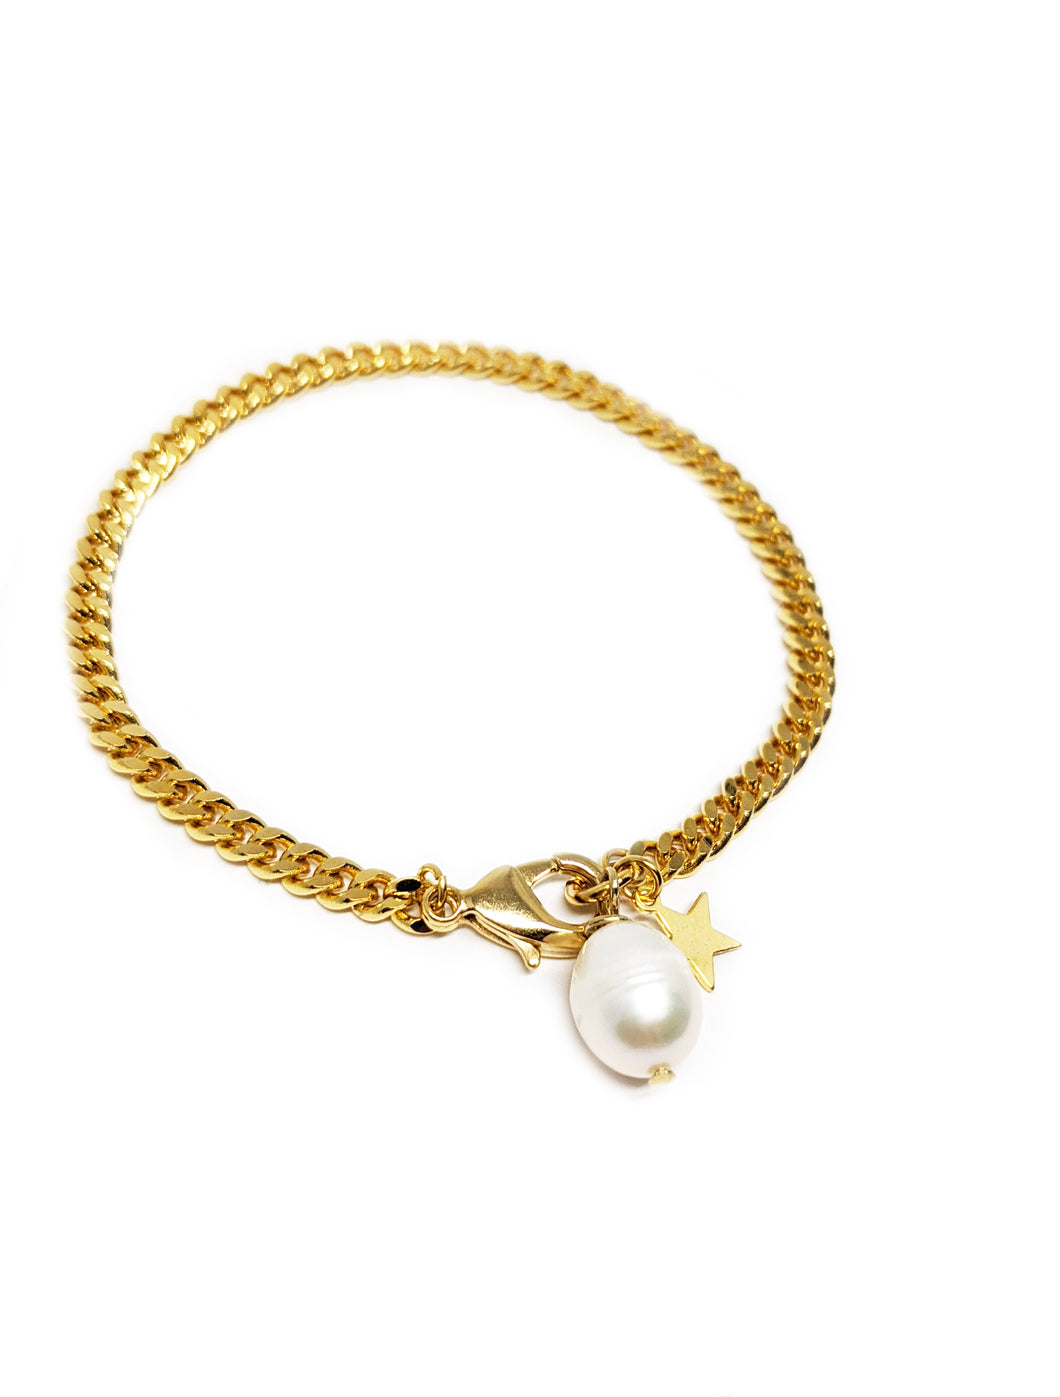 Gold Chain Bracelet with Pearl